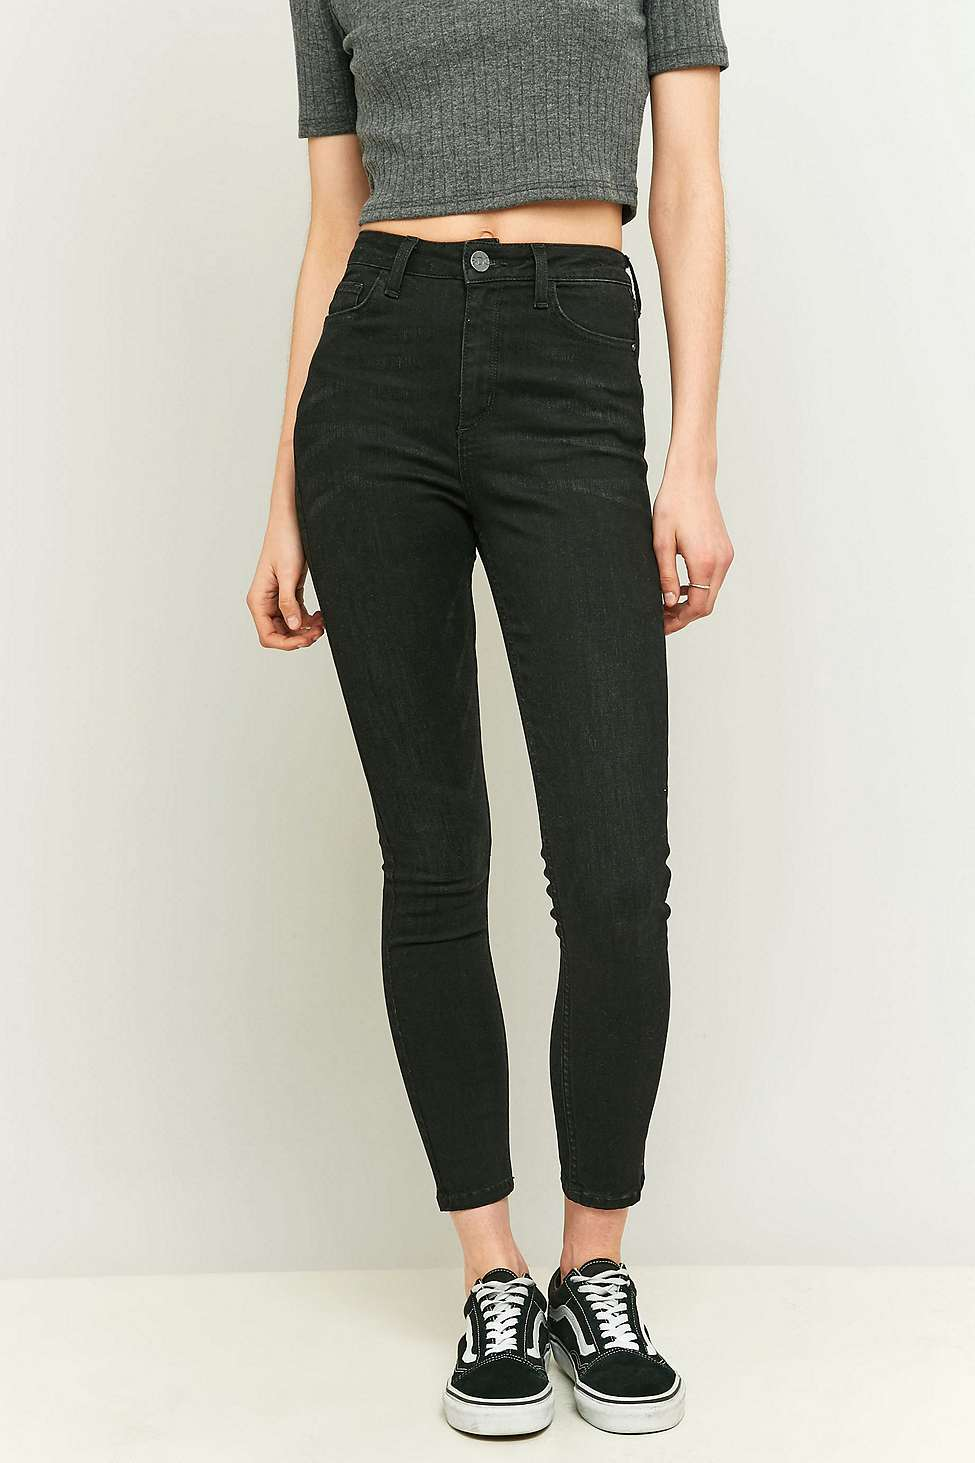 BDG Pine High-Rise Vintage Black Super Skinny Jeans | Urban Outfitters